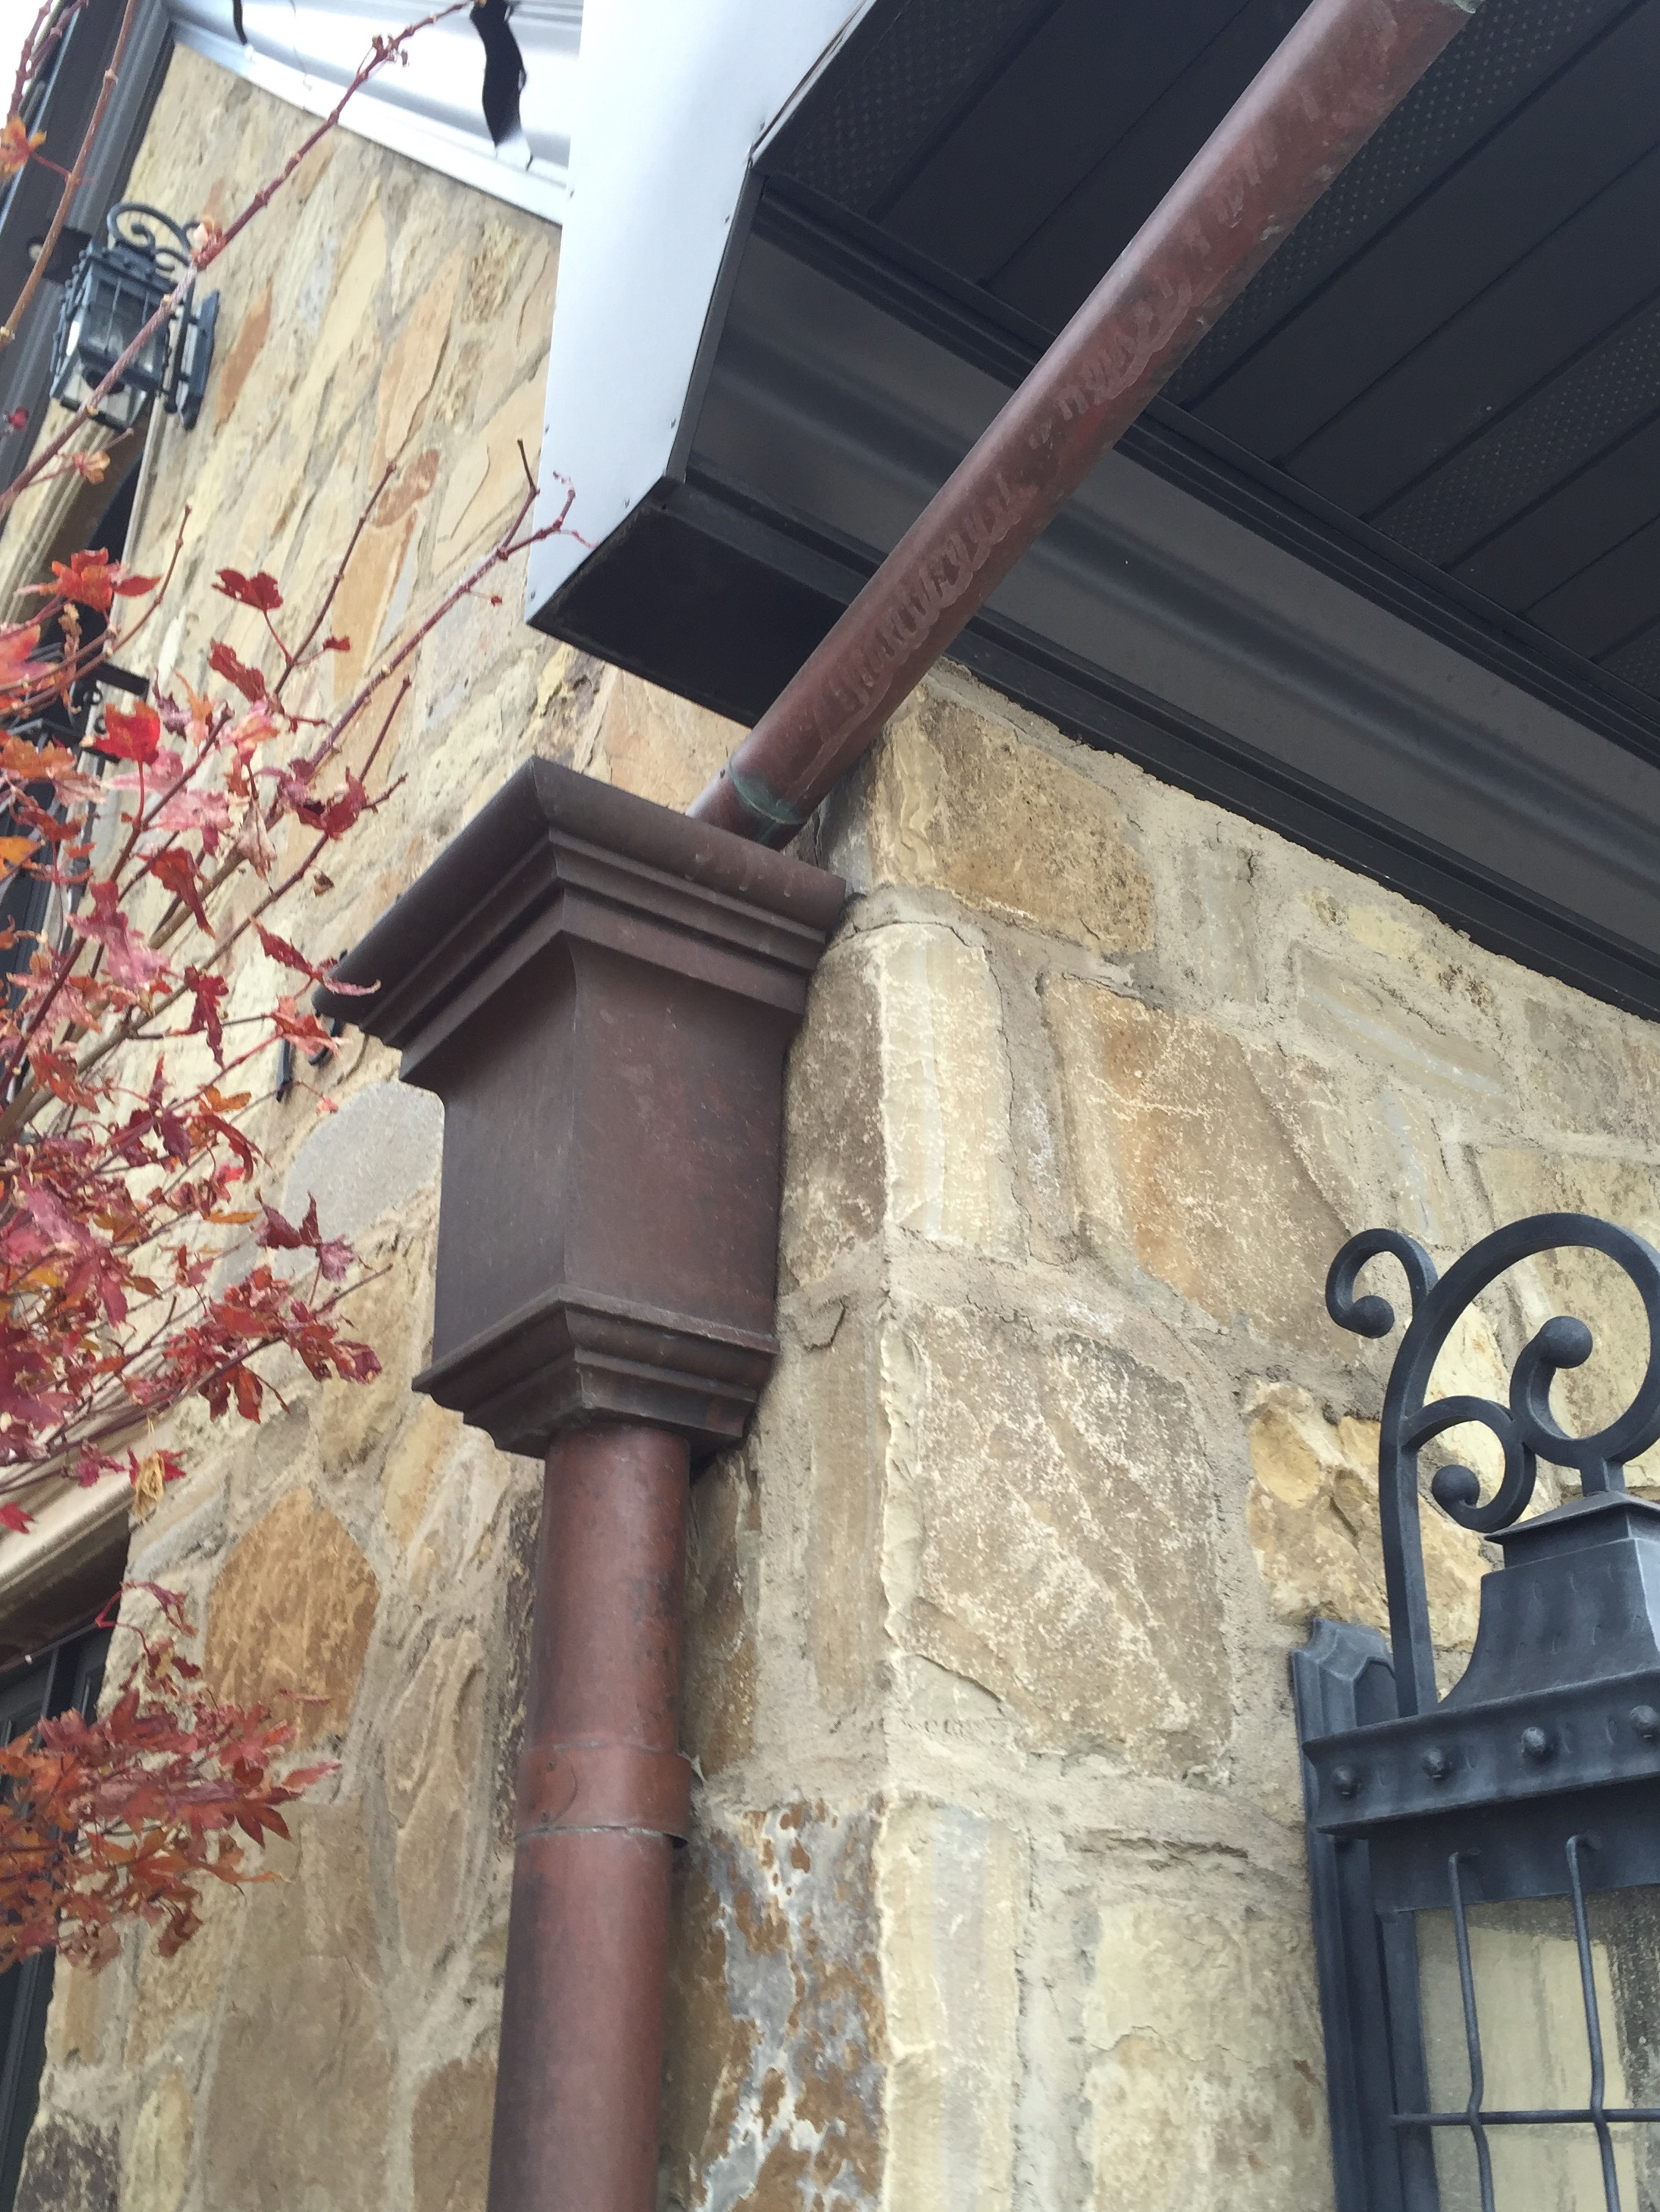 Aluminum crown molding, copper rain gutter and collector box